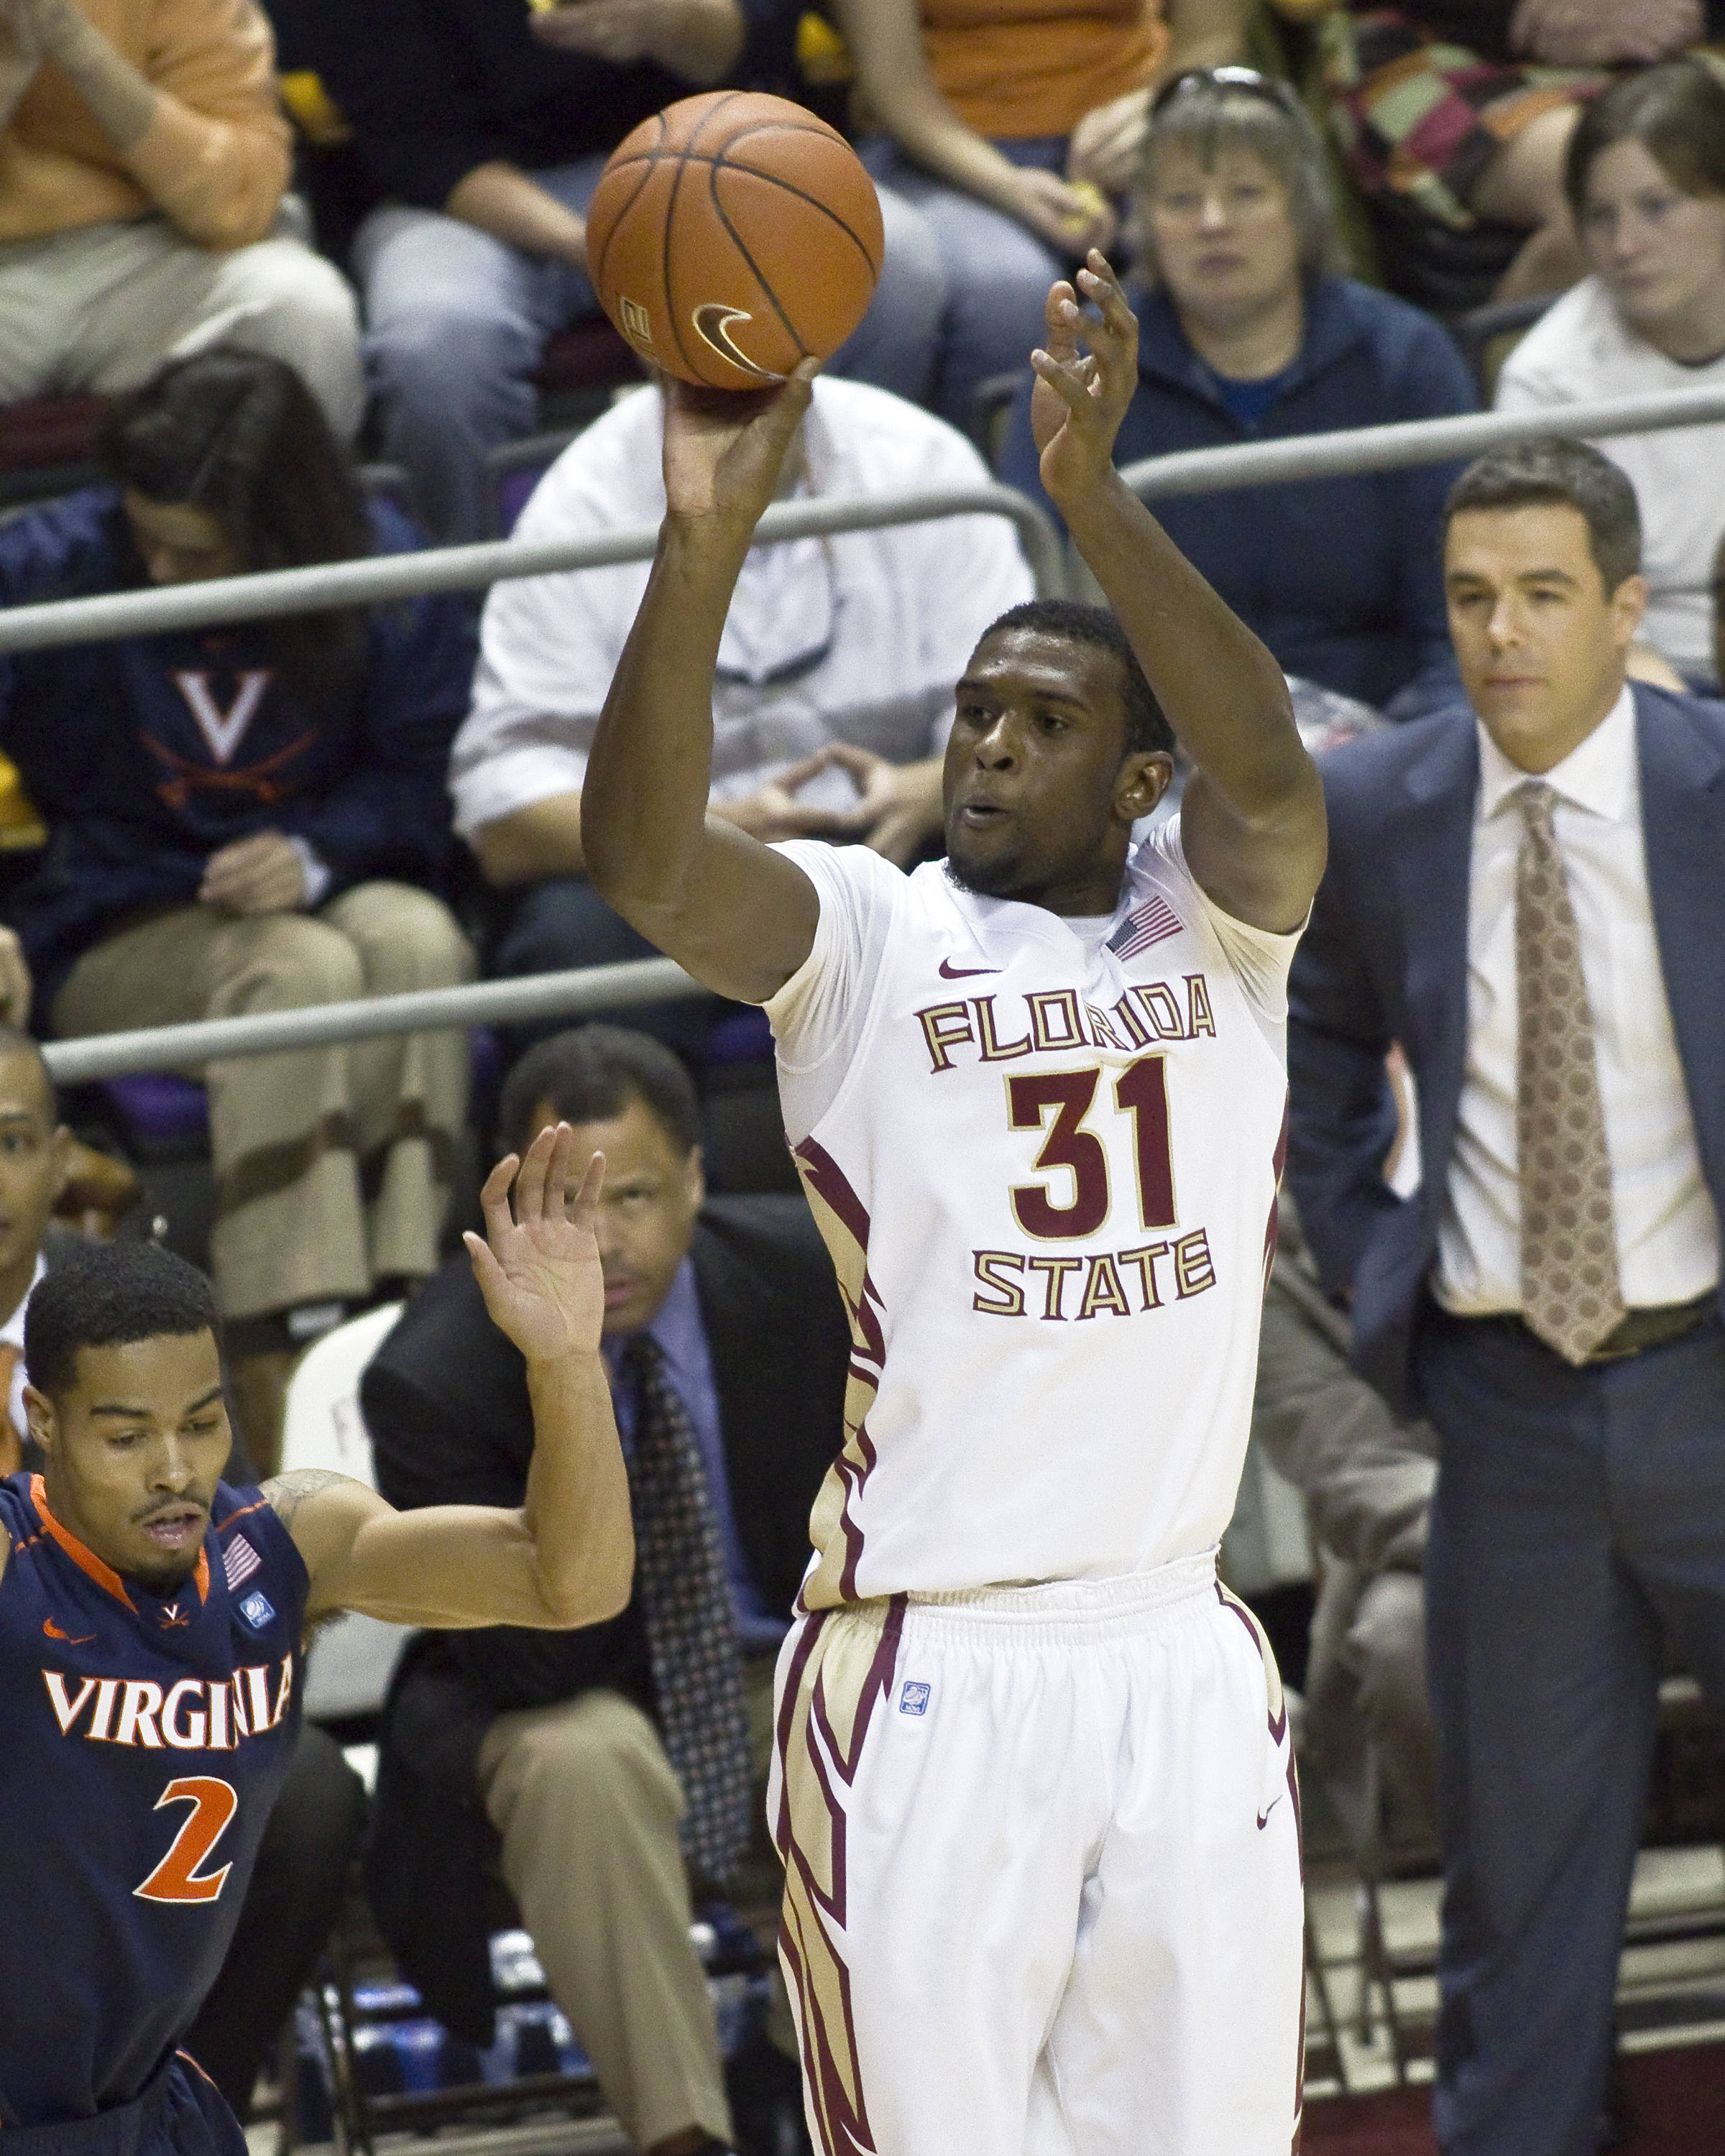 FSU vs Virginia- 02//12/11 - Chris Singleton (31)